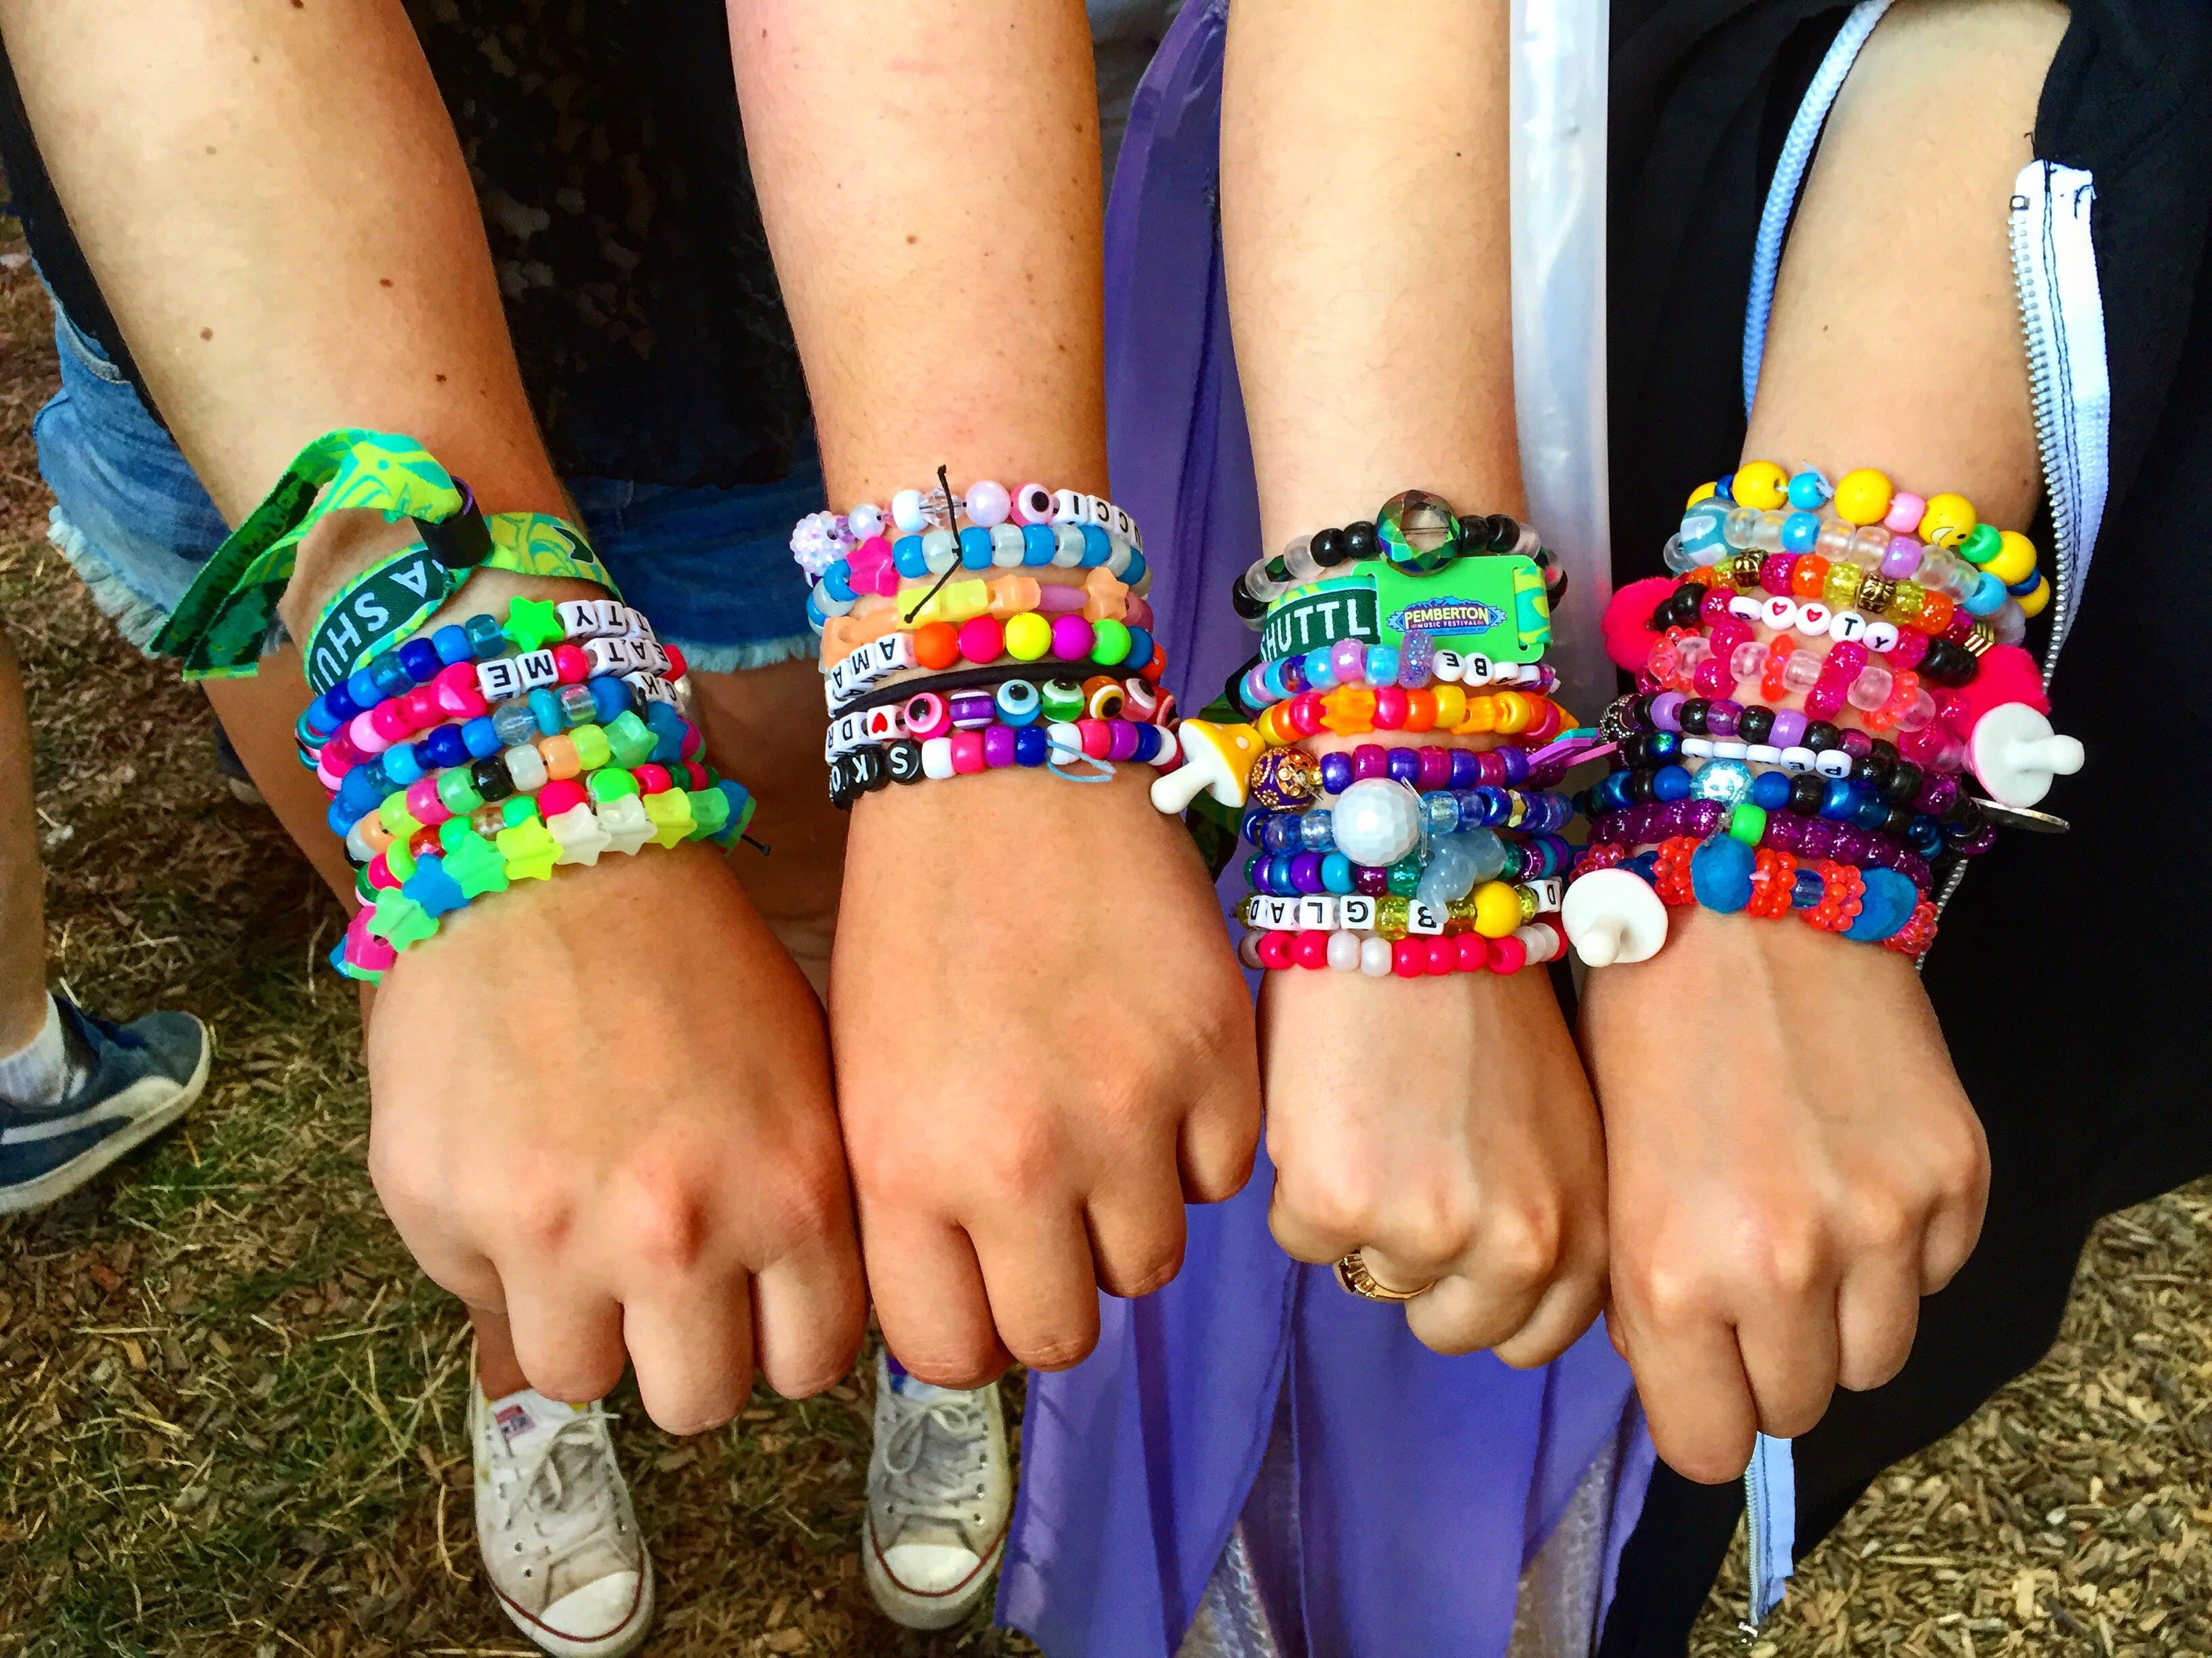 pin hers and bracelets freak kandi music festival rave his bracelet heyy ravers